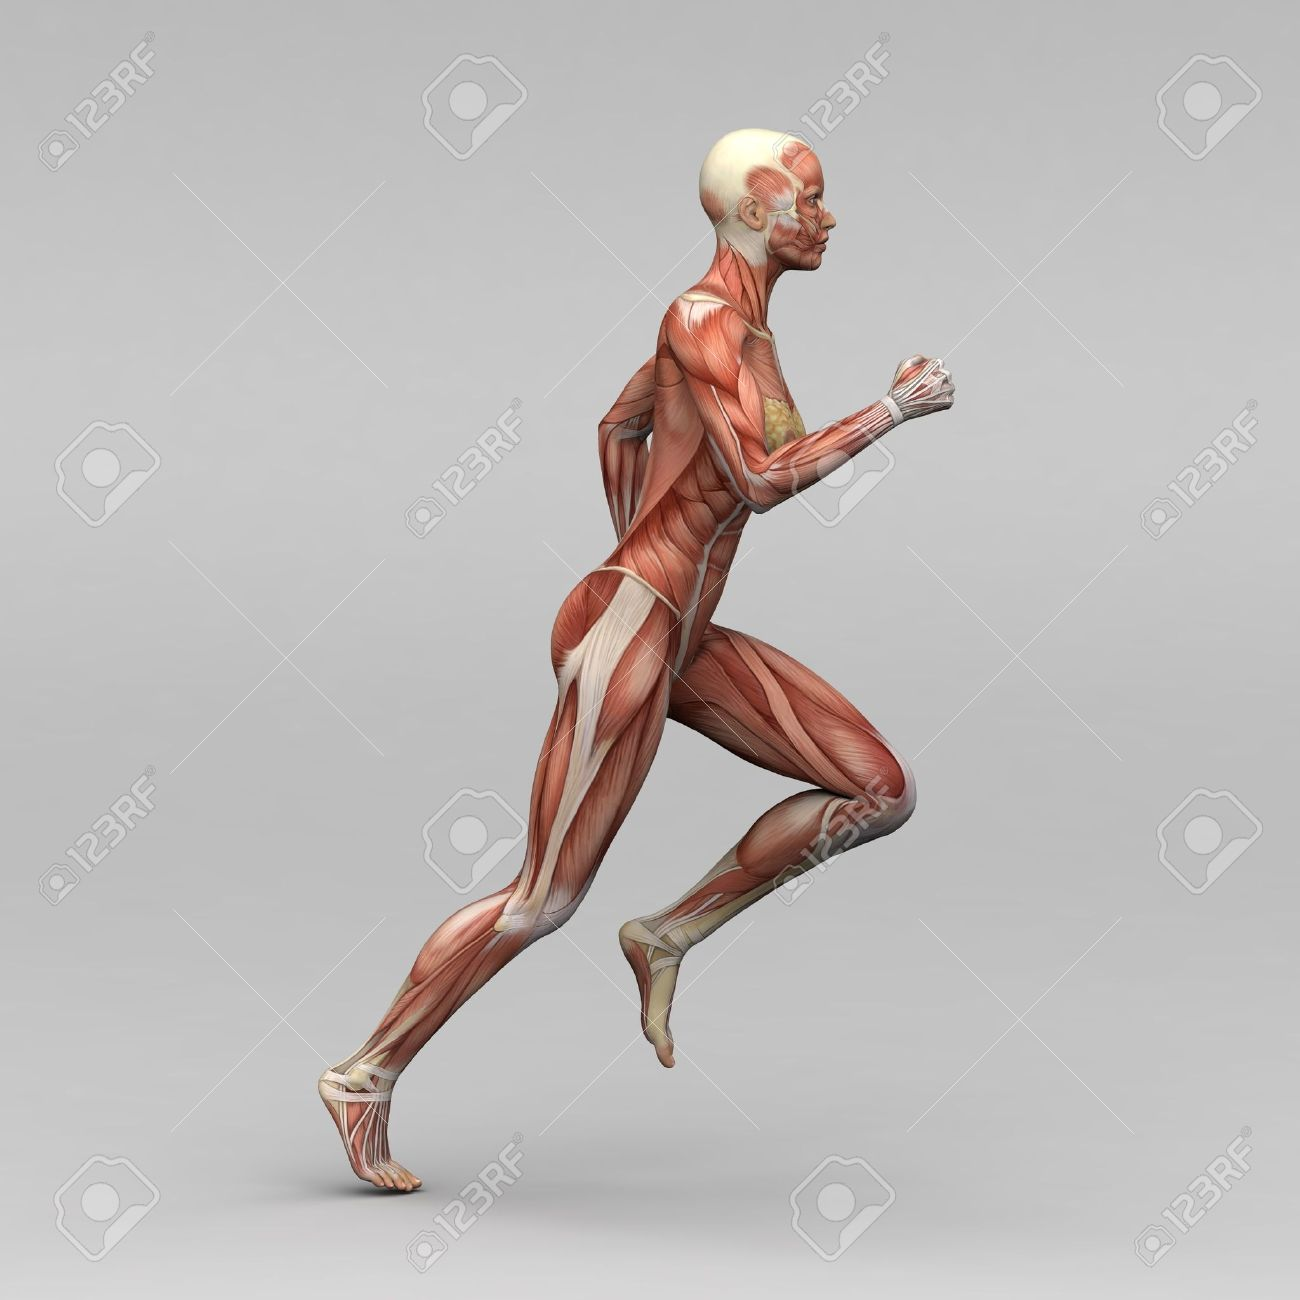 Female Human Anatomy And Muscles Stock Photo Picture And Royalty